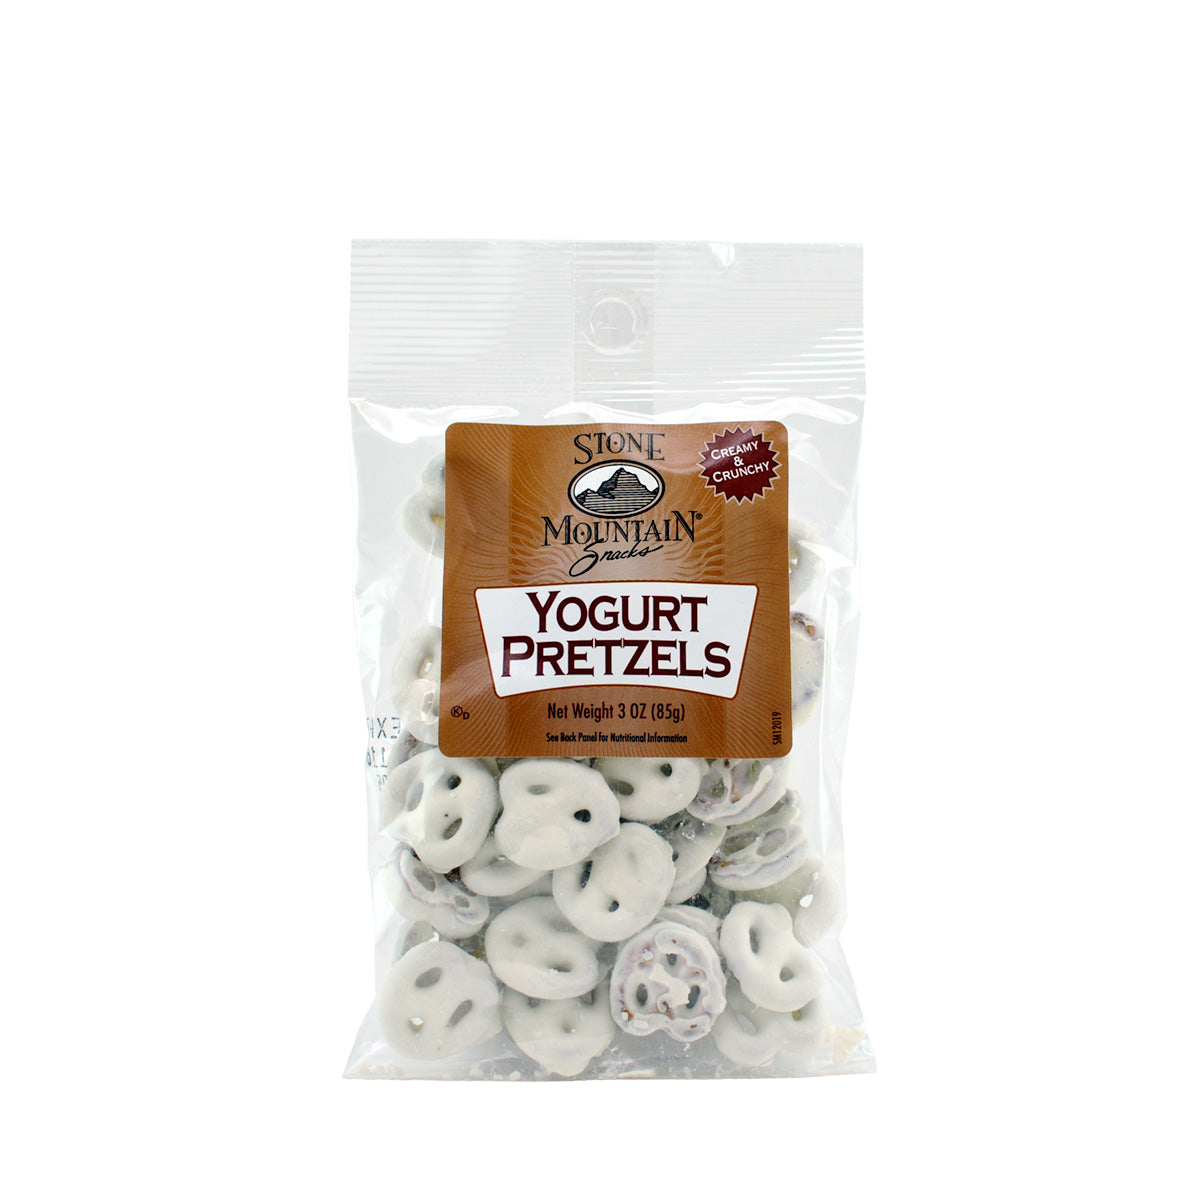 Yogurt Pretzels - Case of 12 bags